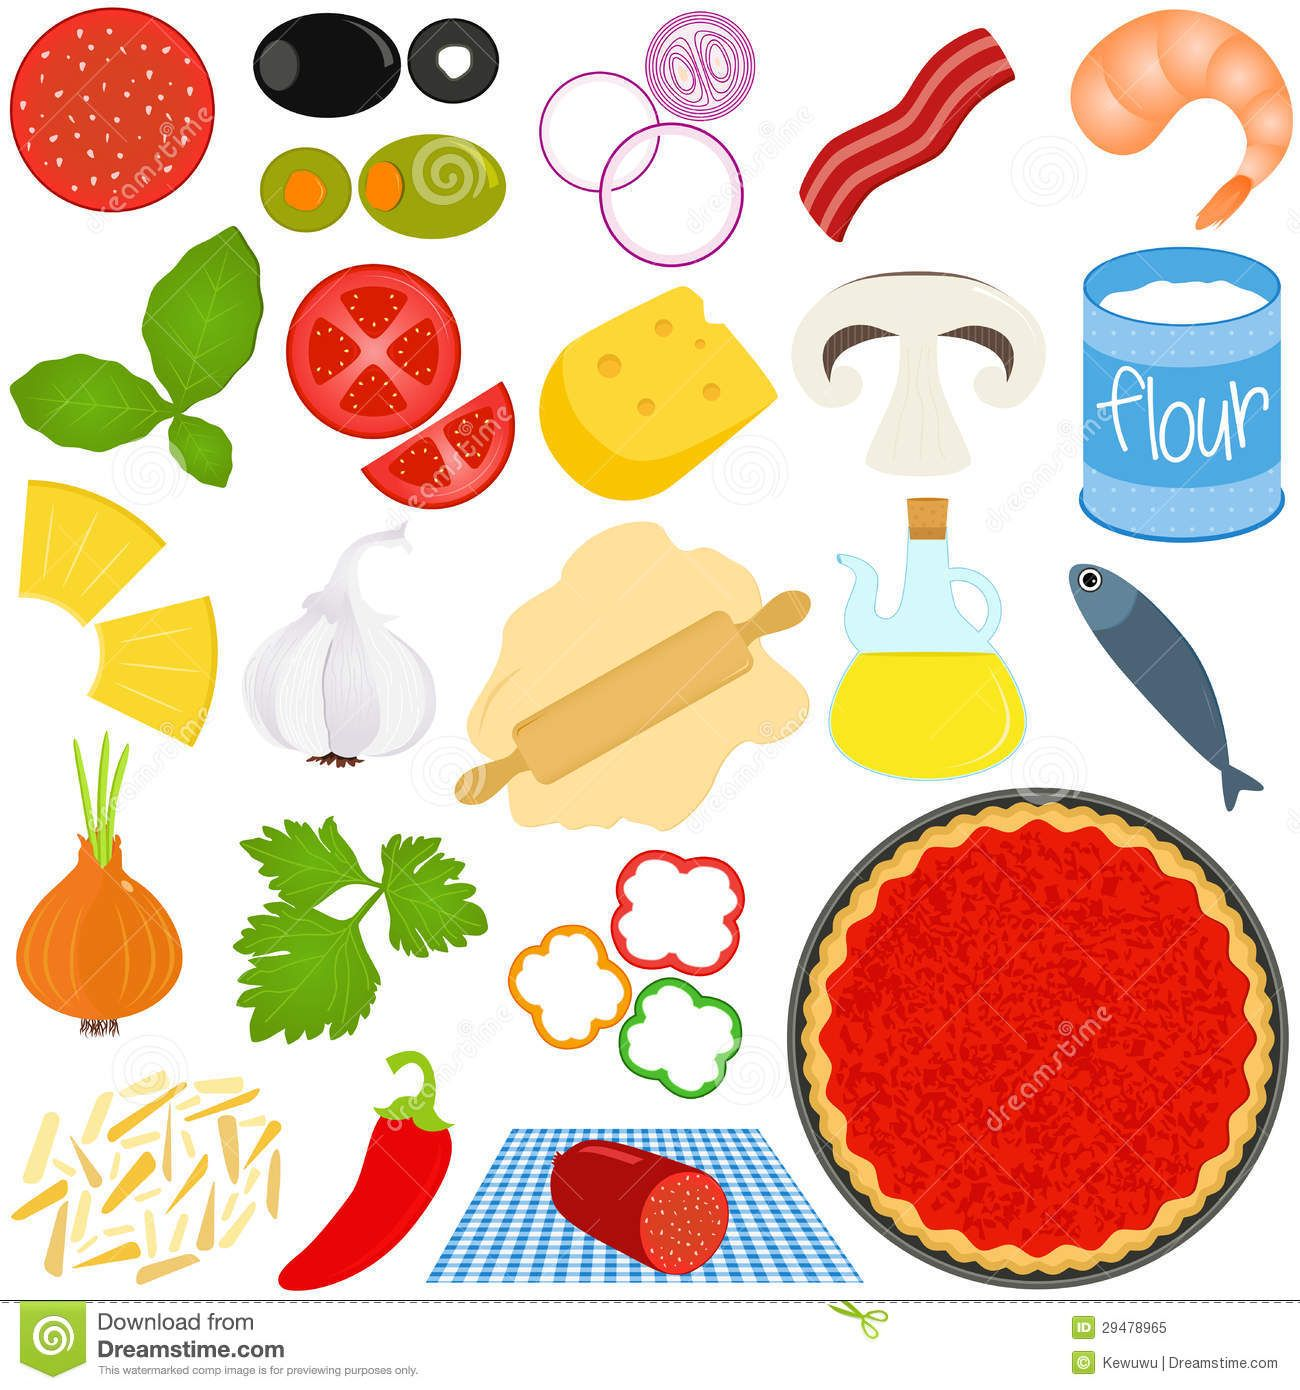 Pizza clipart pizza restaurant. Toppings ingredients to make